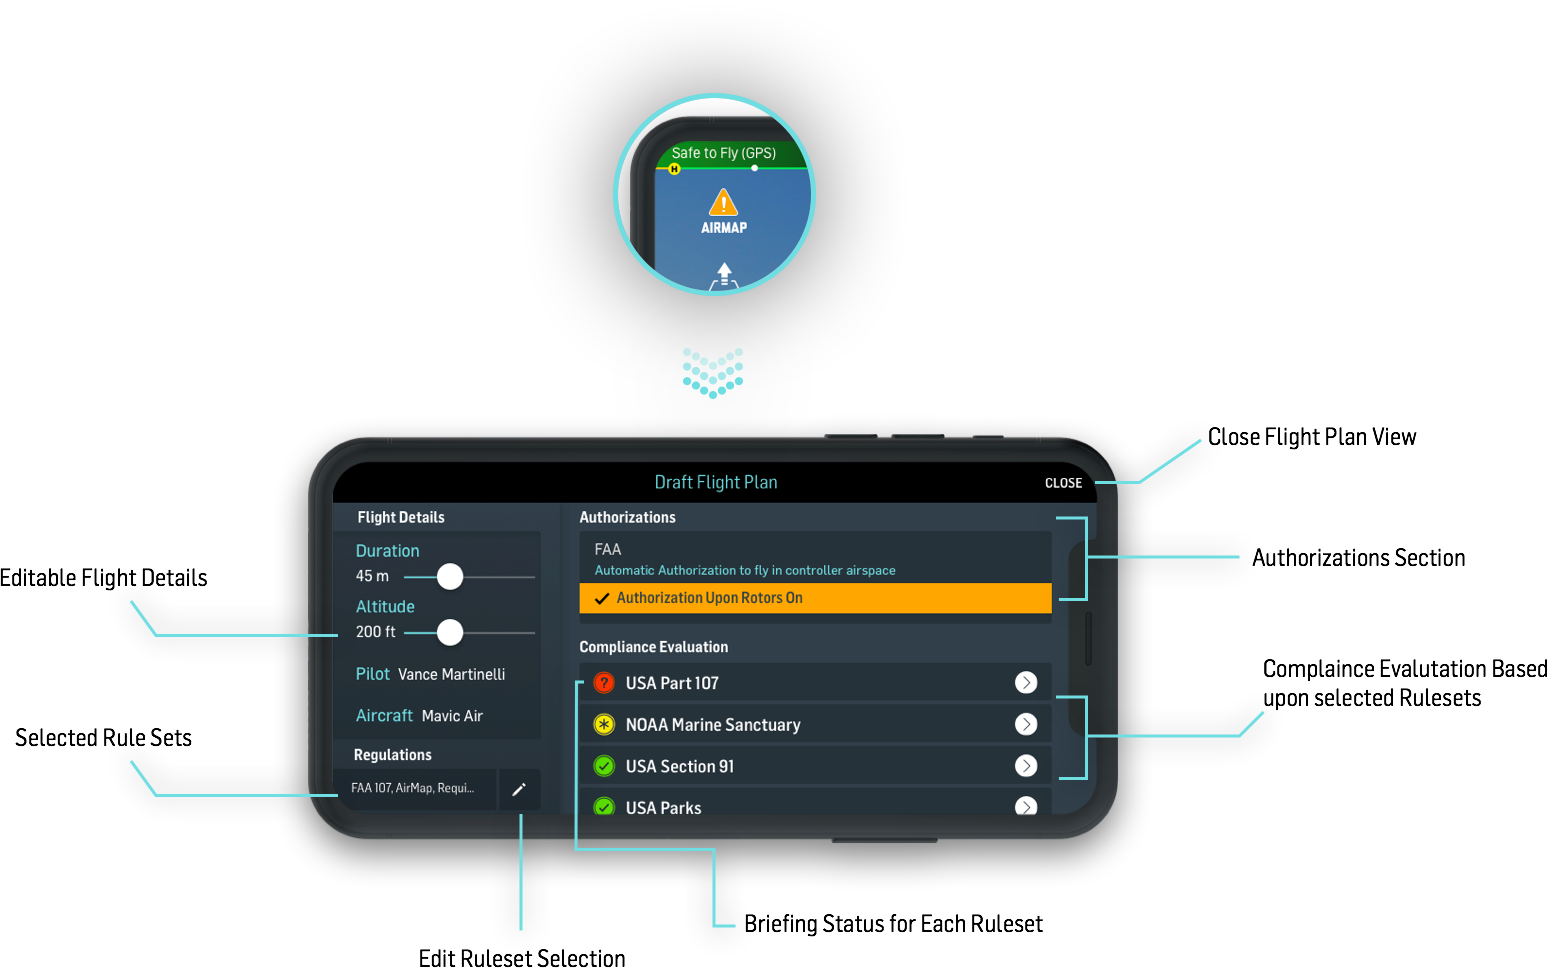 How do I connect my drone to my app? – AirMap